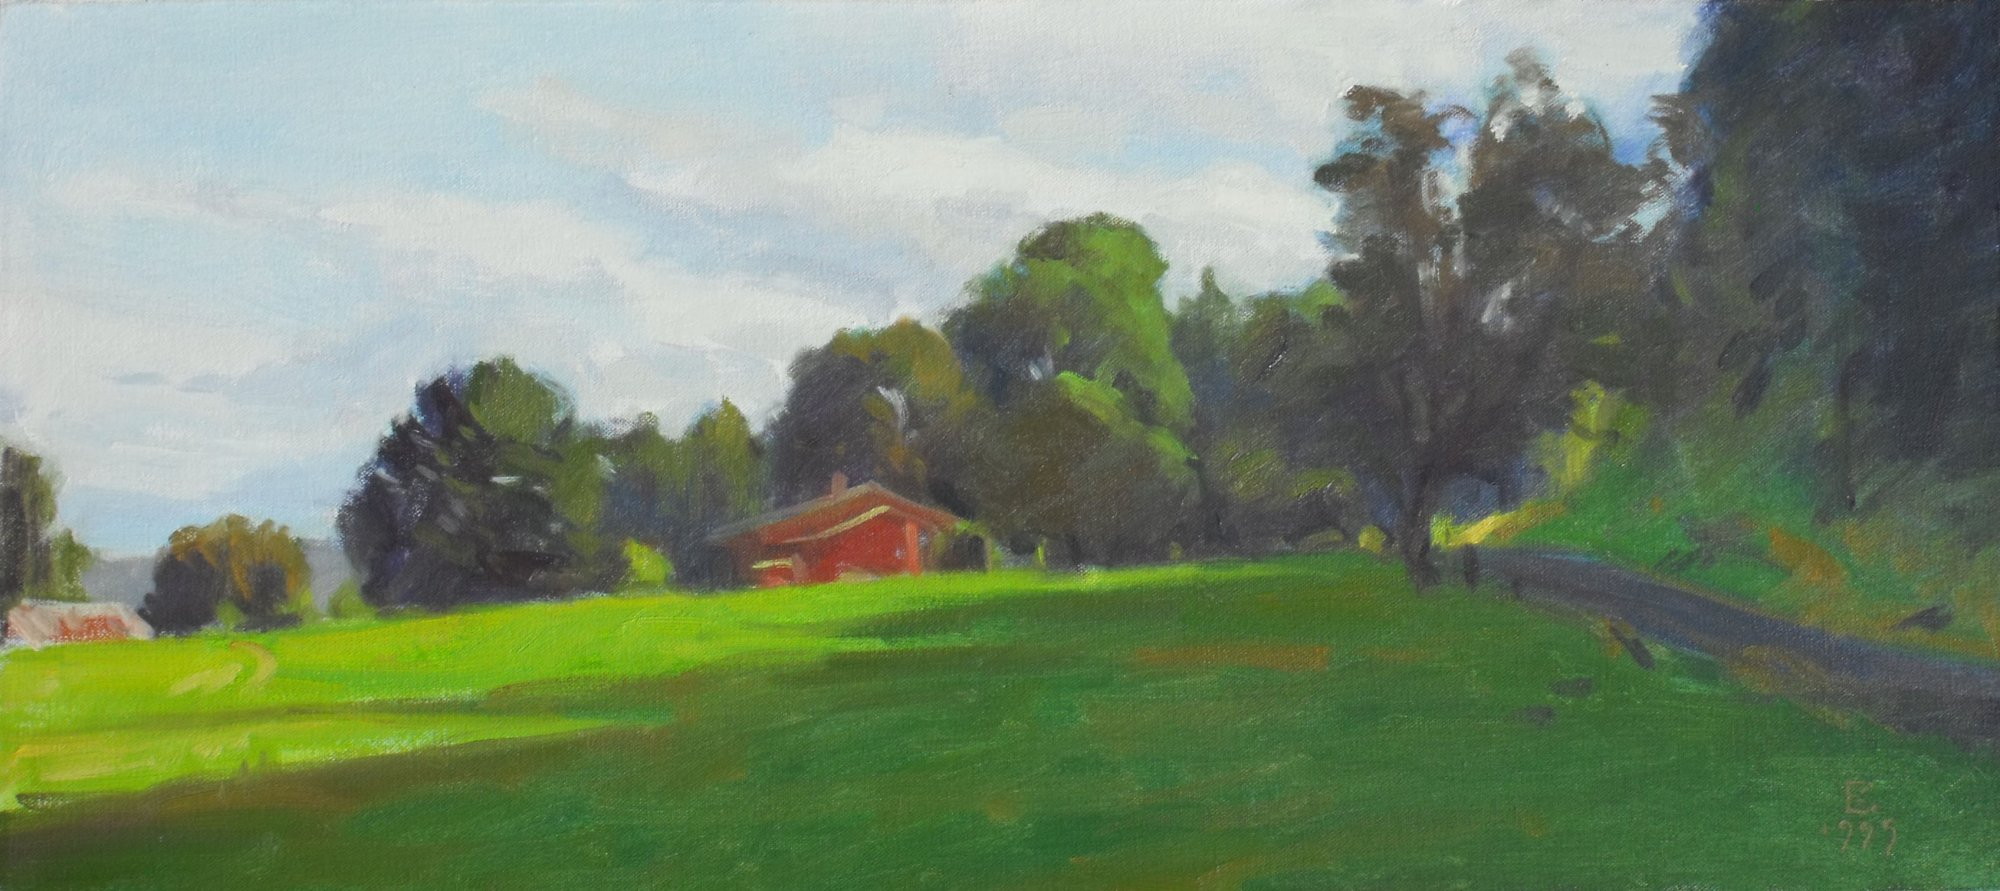 Bob Pepper's Farm, oil on canvas, 11 x 22 inches, copyright ©1999